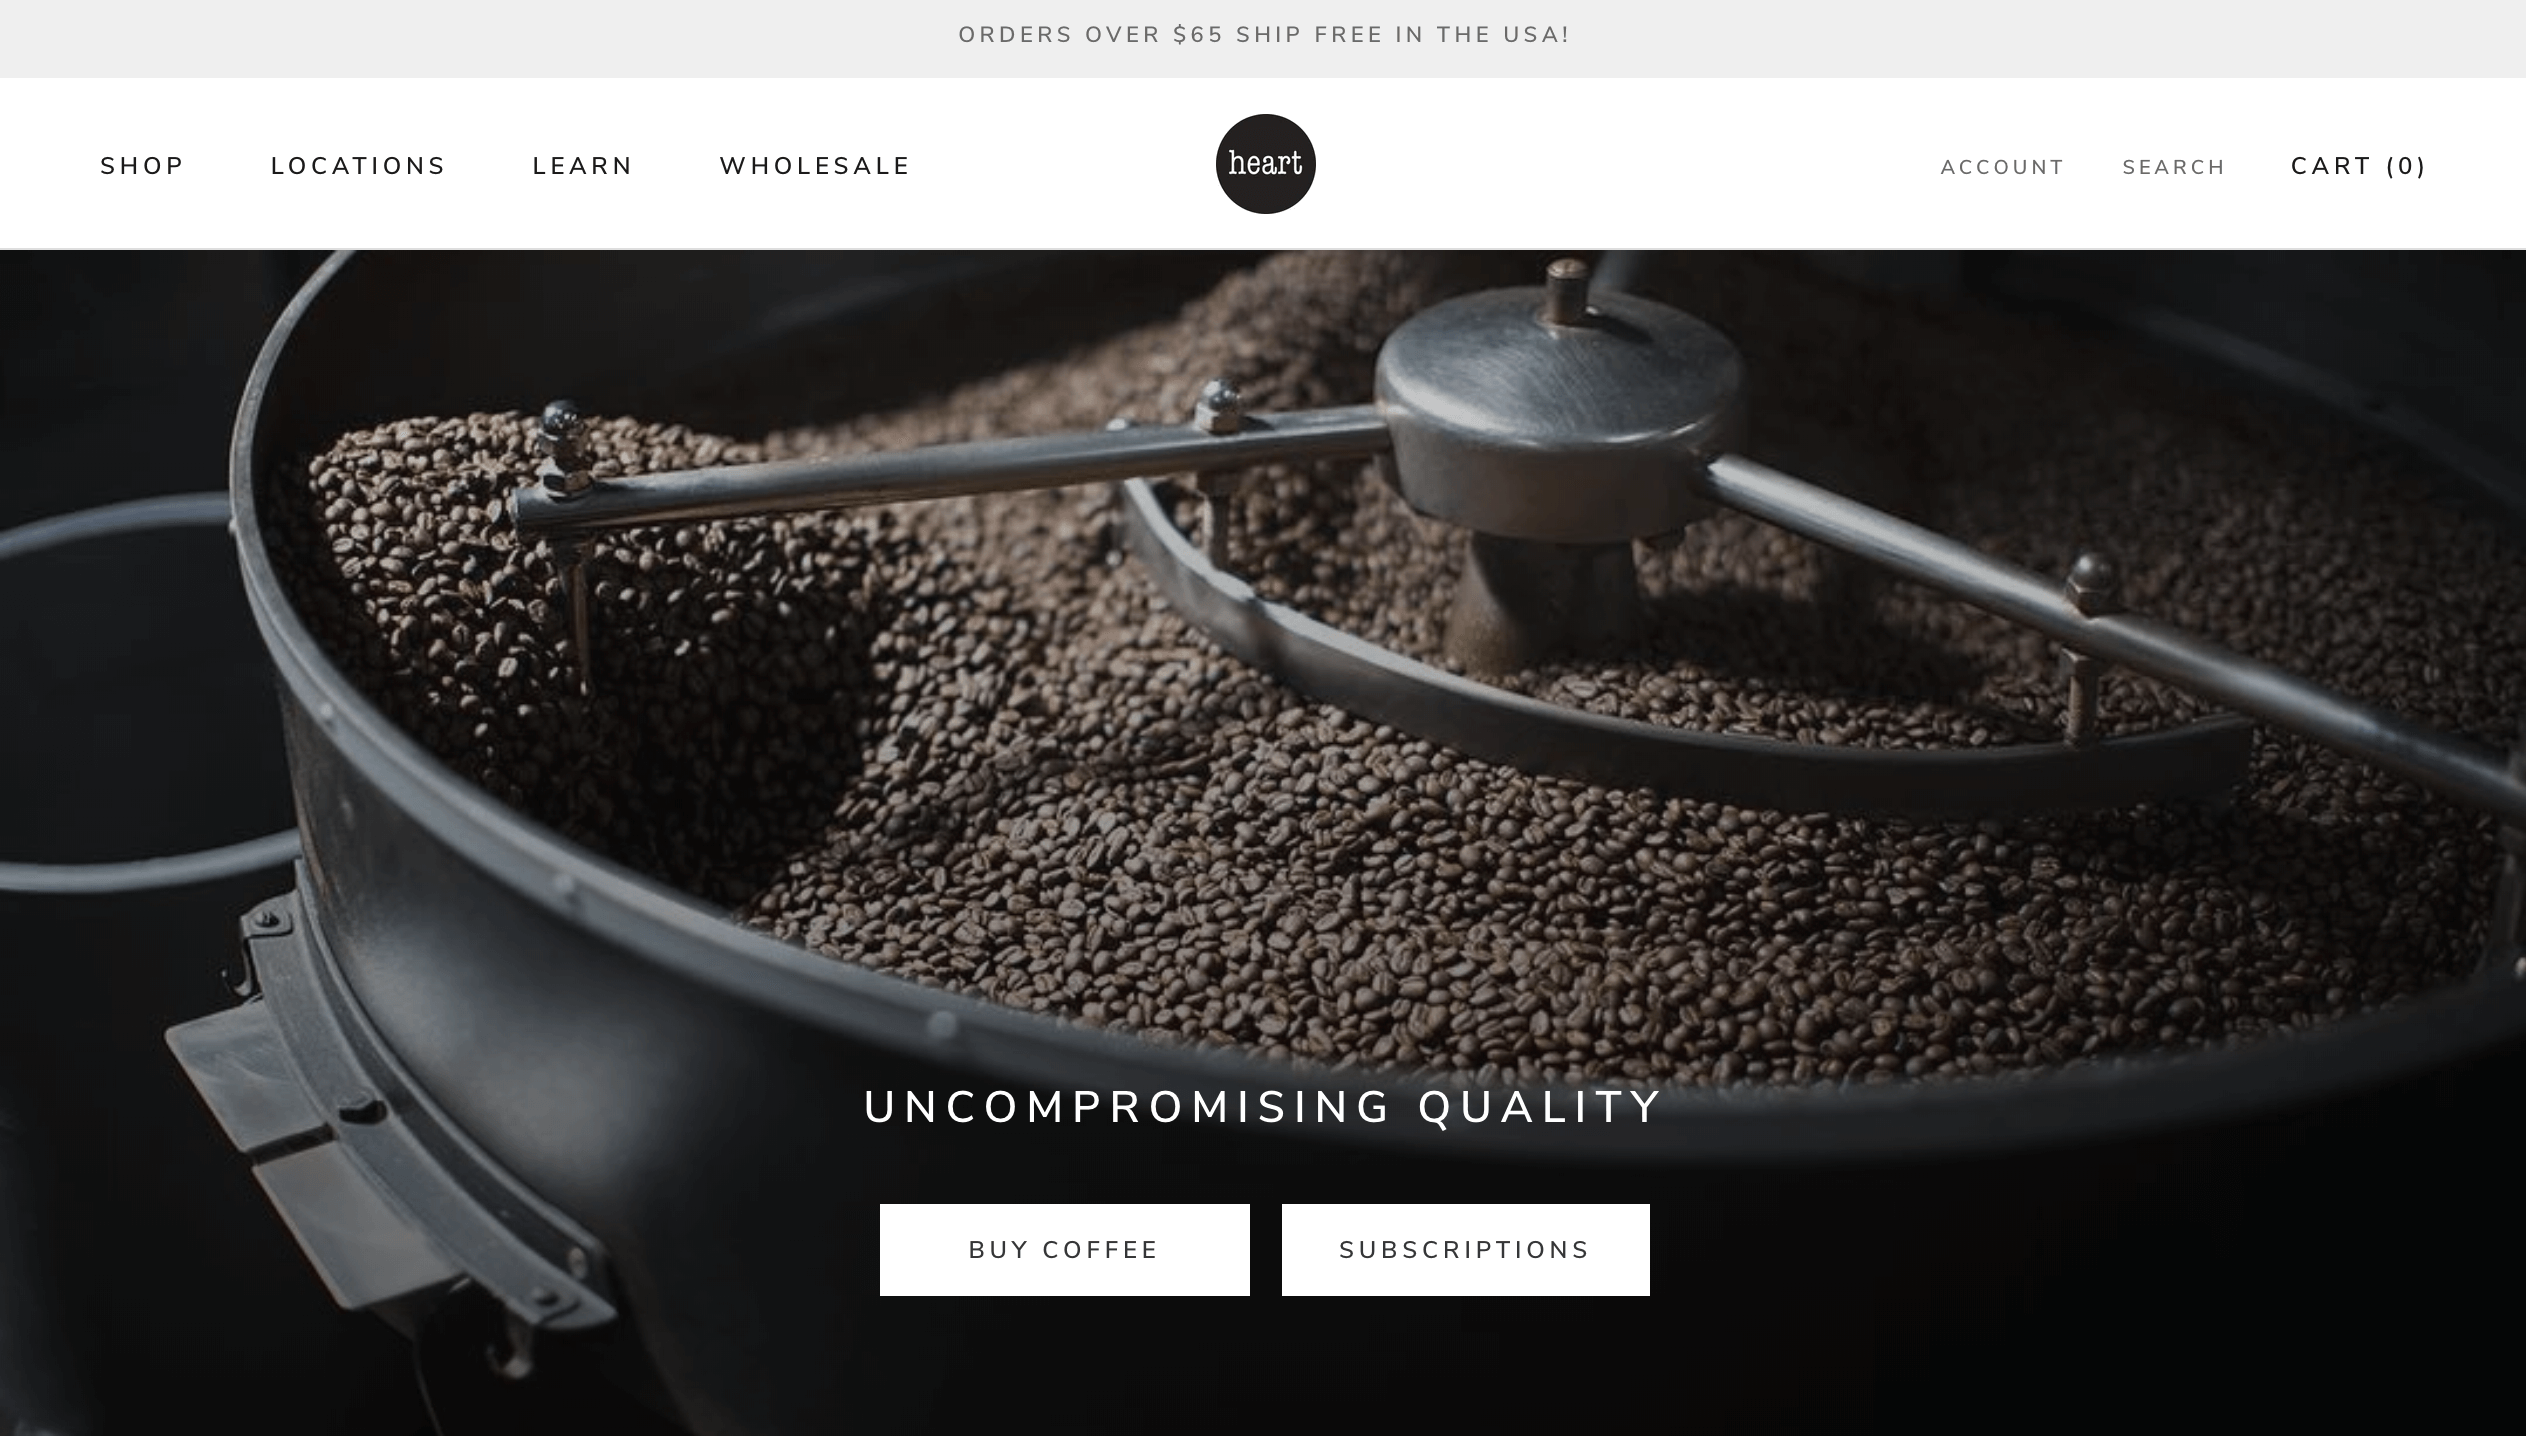 Heart coffee roasters shopify recharge connection by littledata